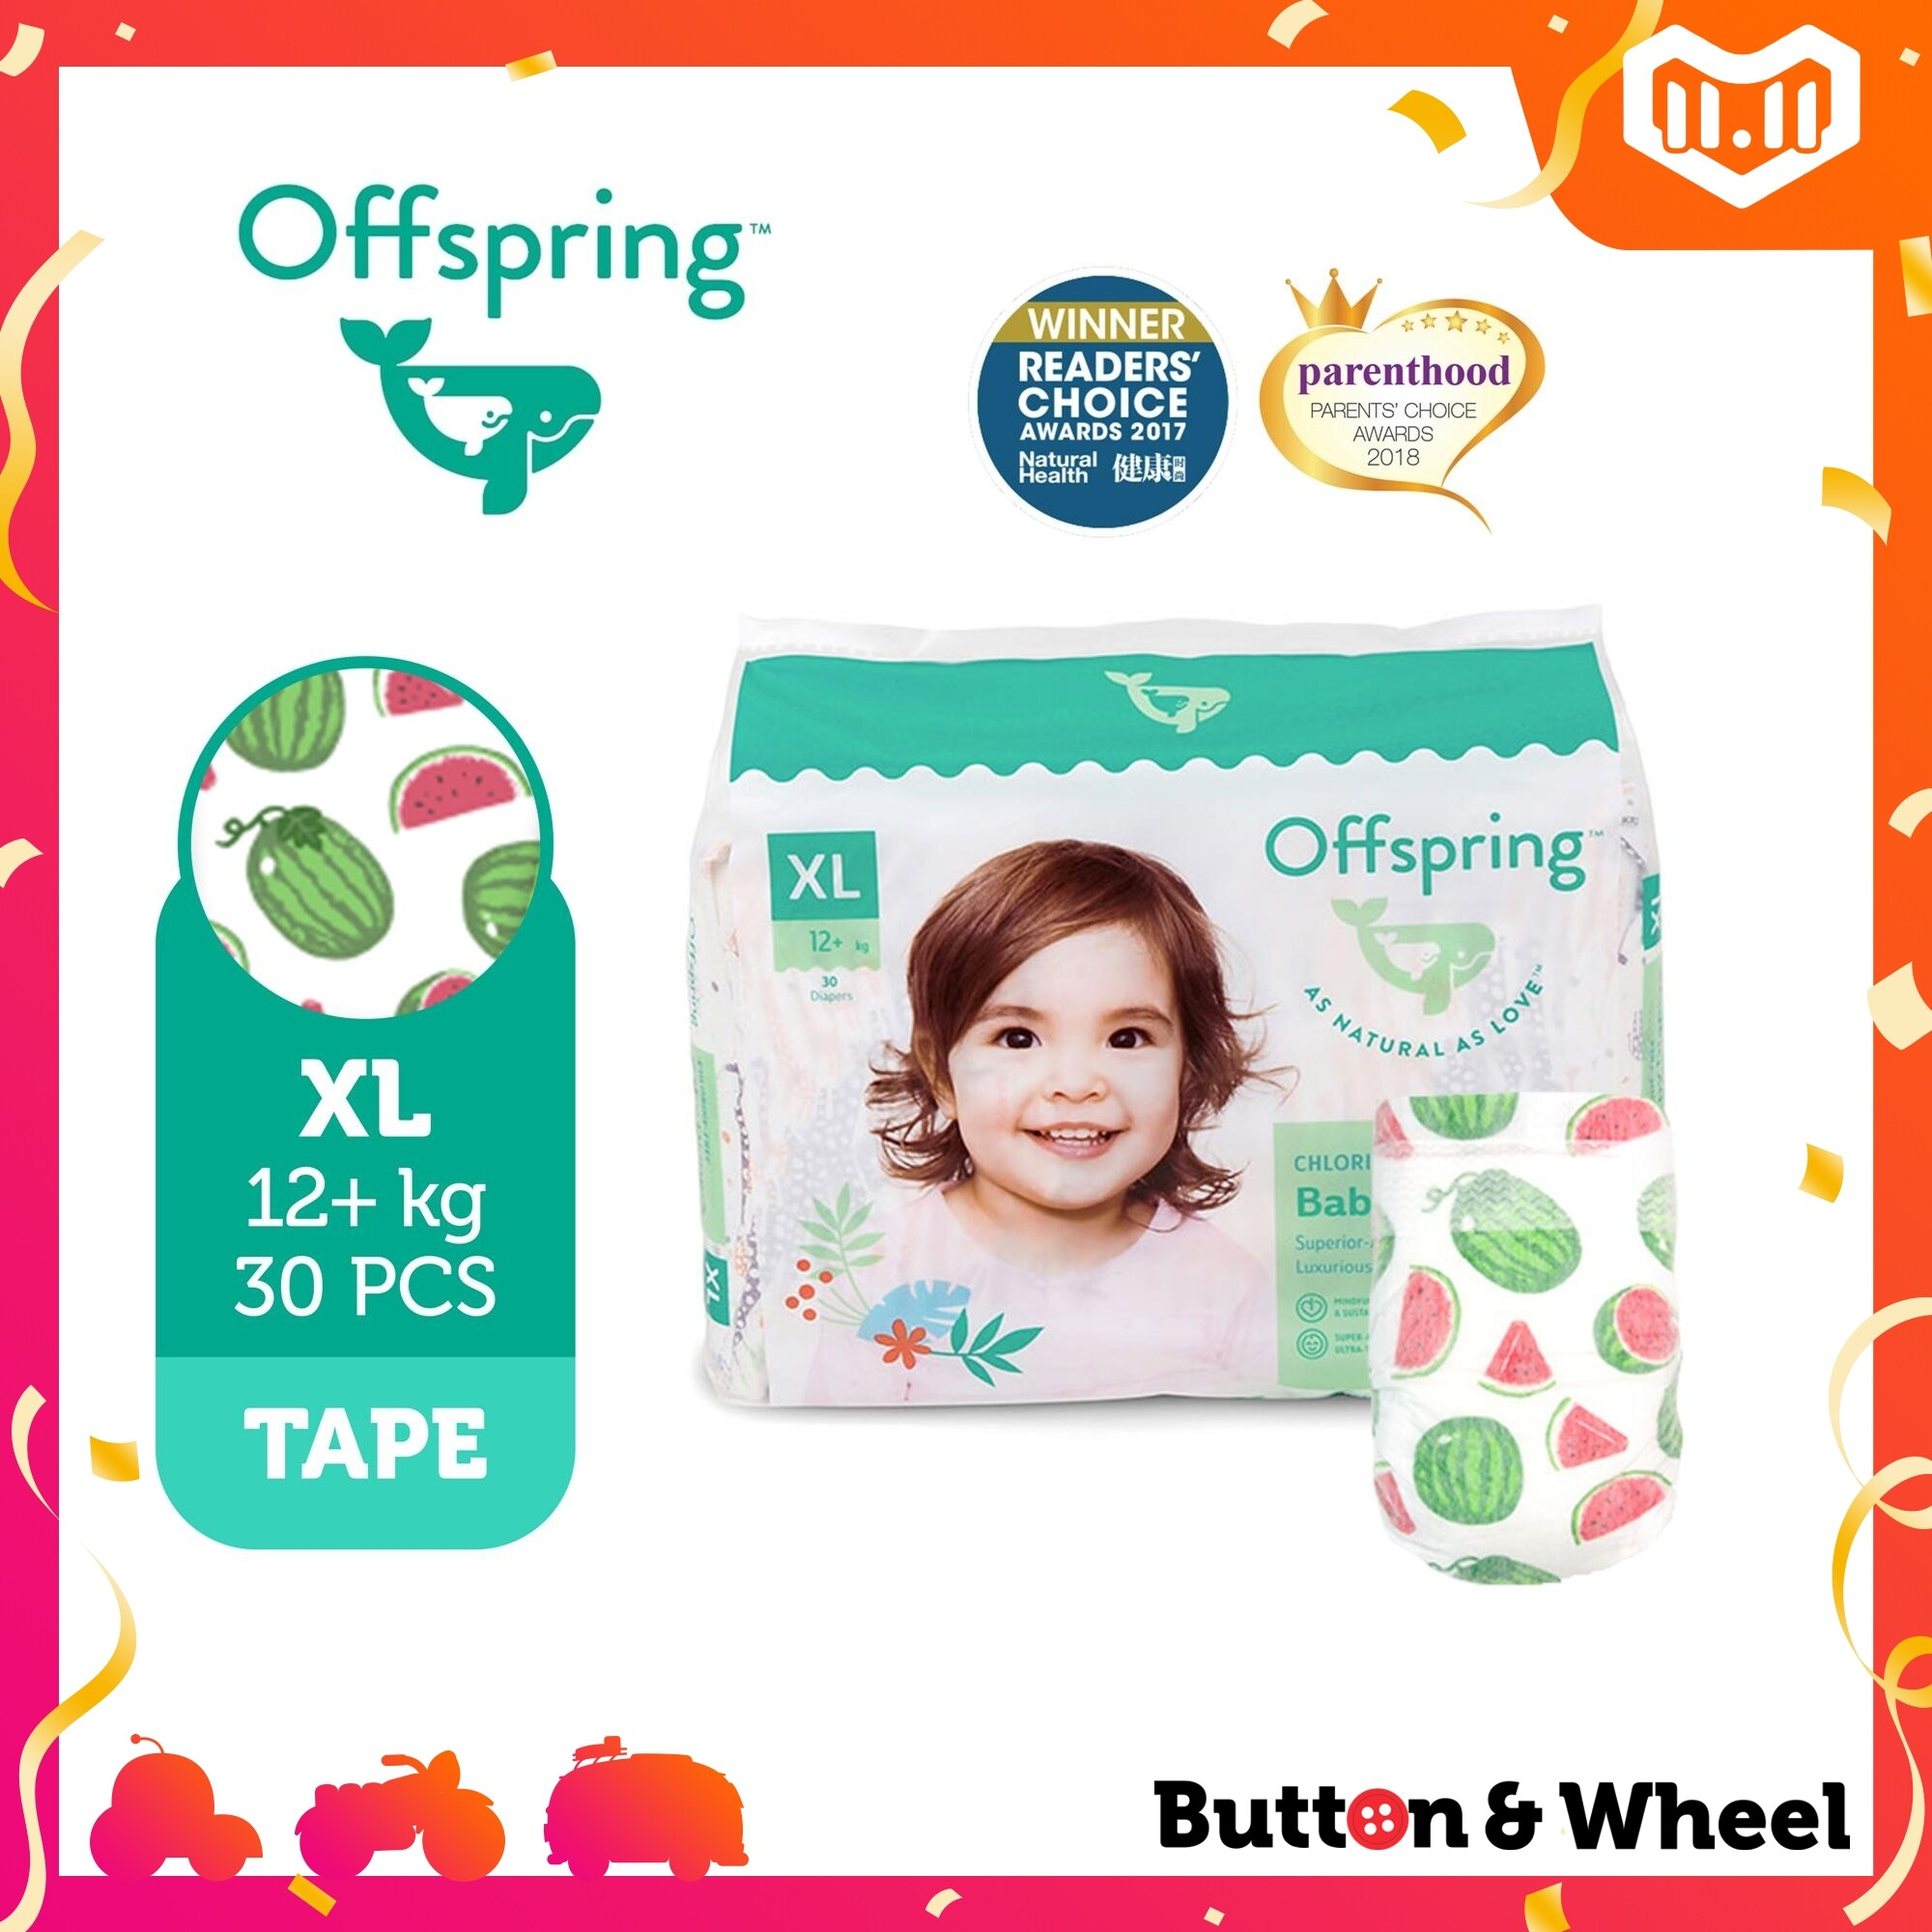 Offspring FASHION DIAPERS XL-30 pcs:OI-FT-XL-Giraffe